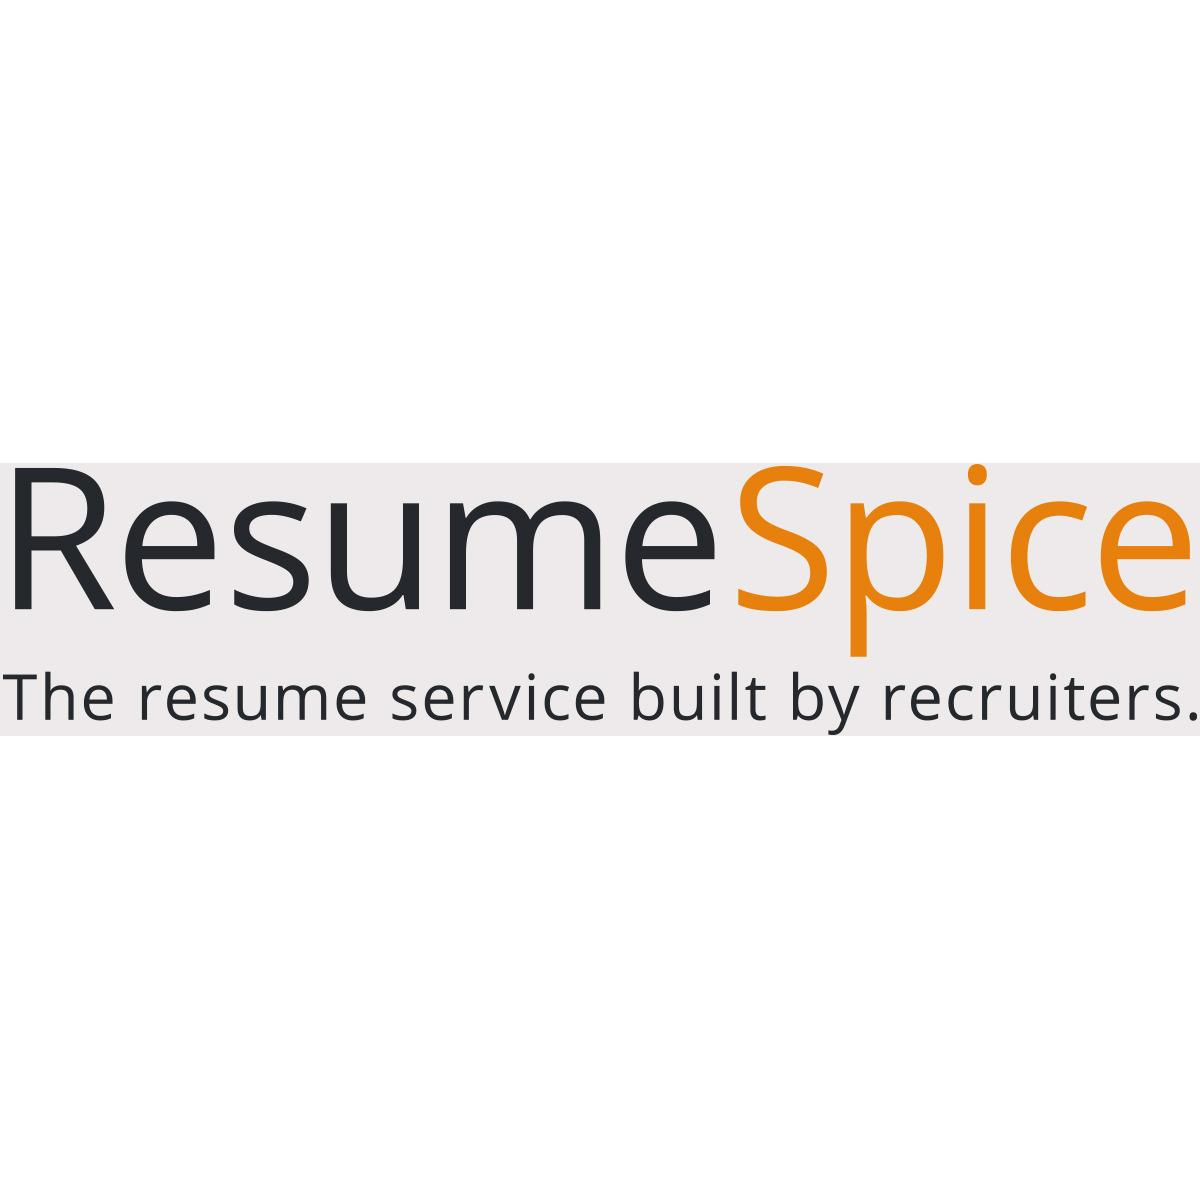 Local Professional Resume Writers Resumespice Professional Resume Writing And Career